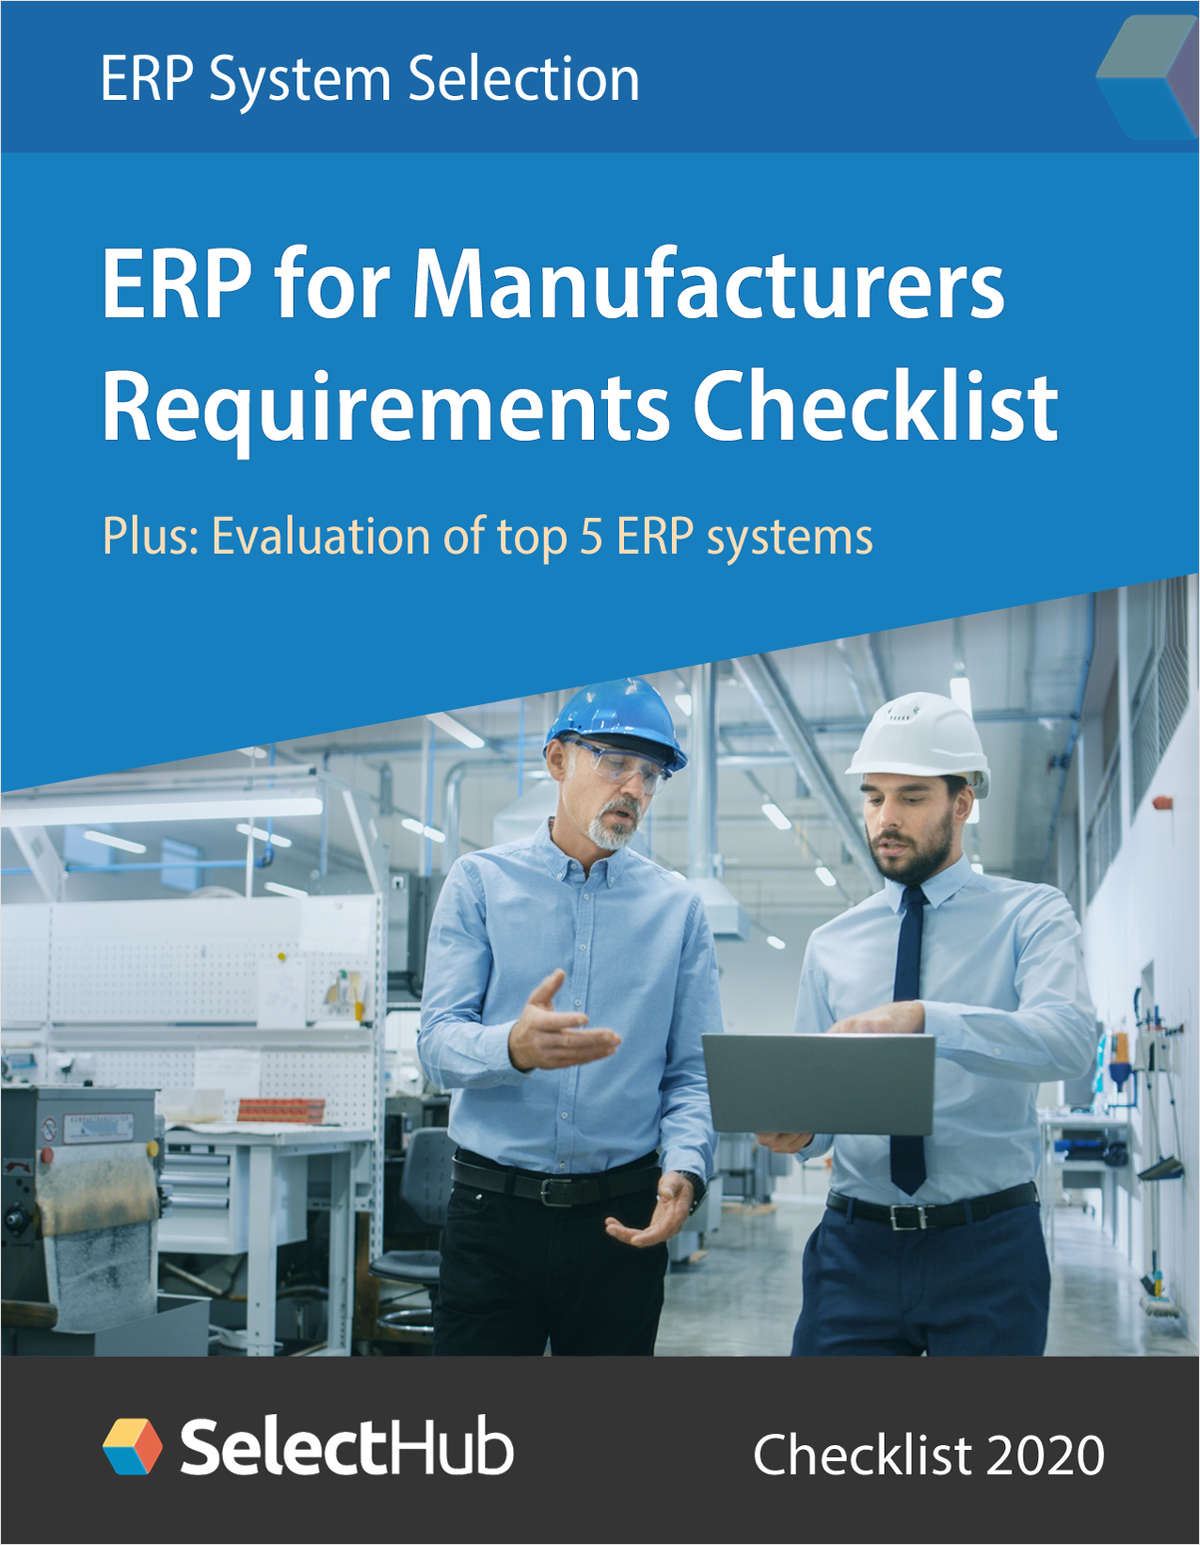 Manufacturing ERP Selection Requirements Checklist